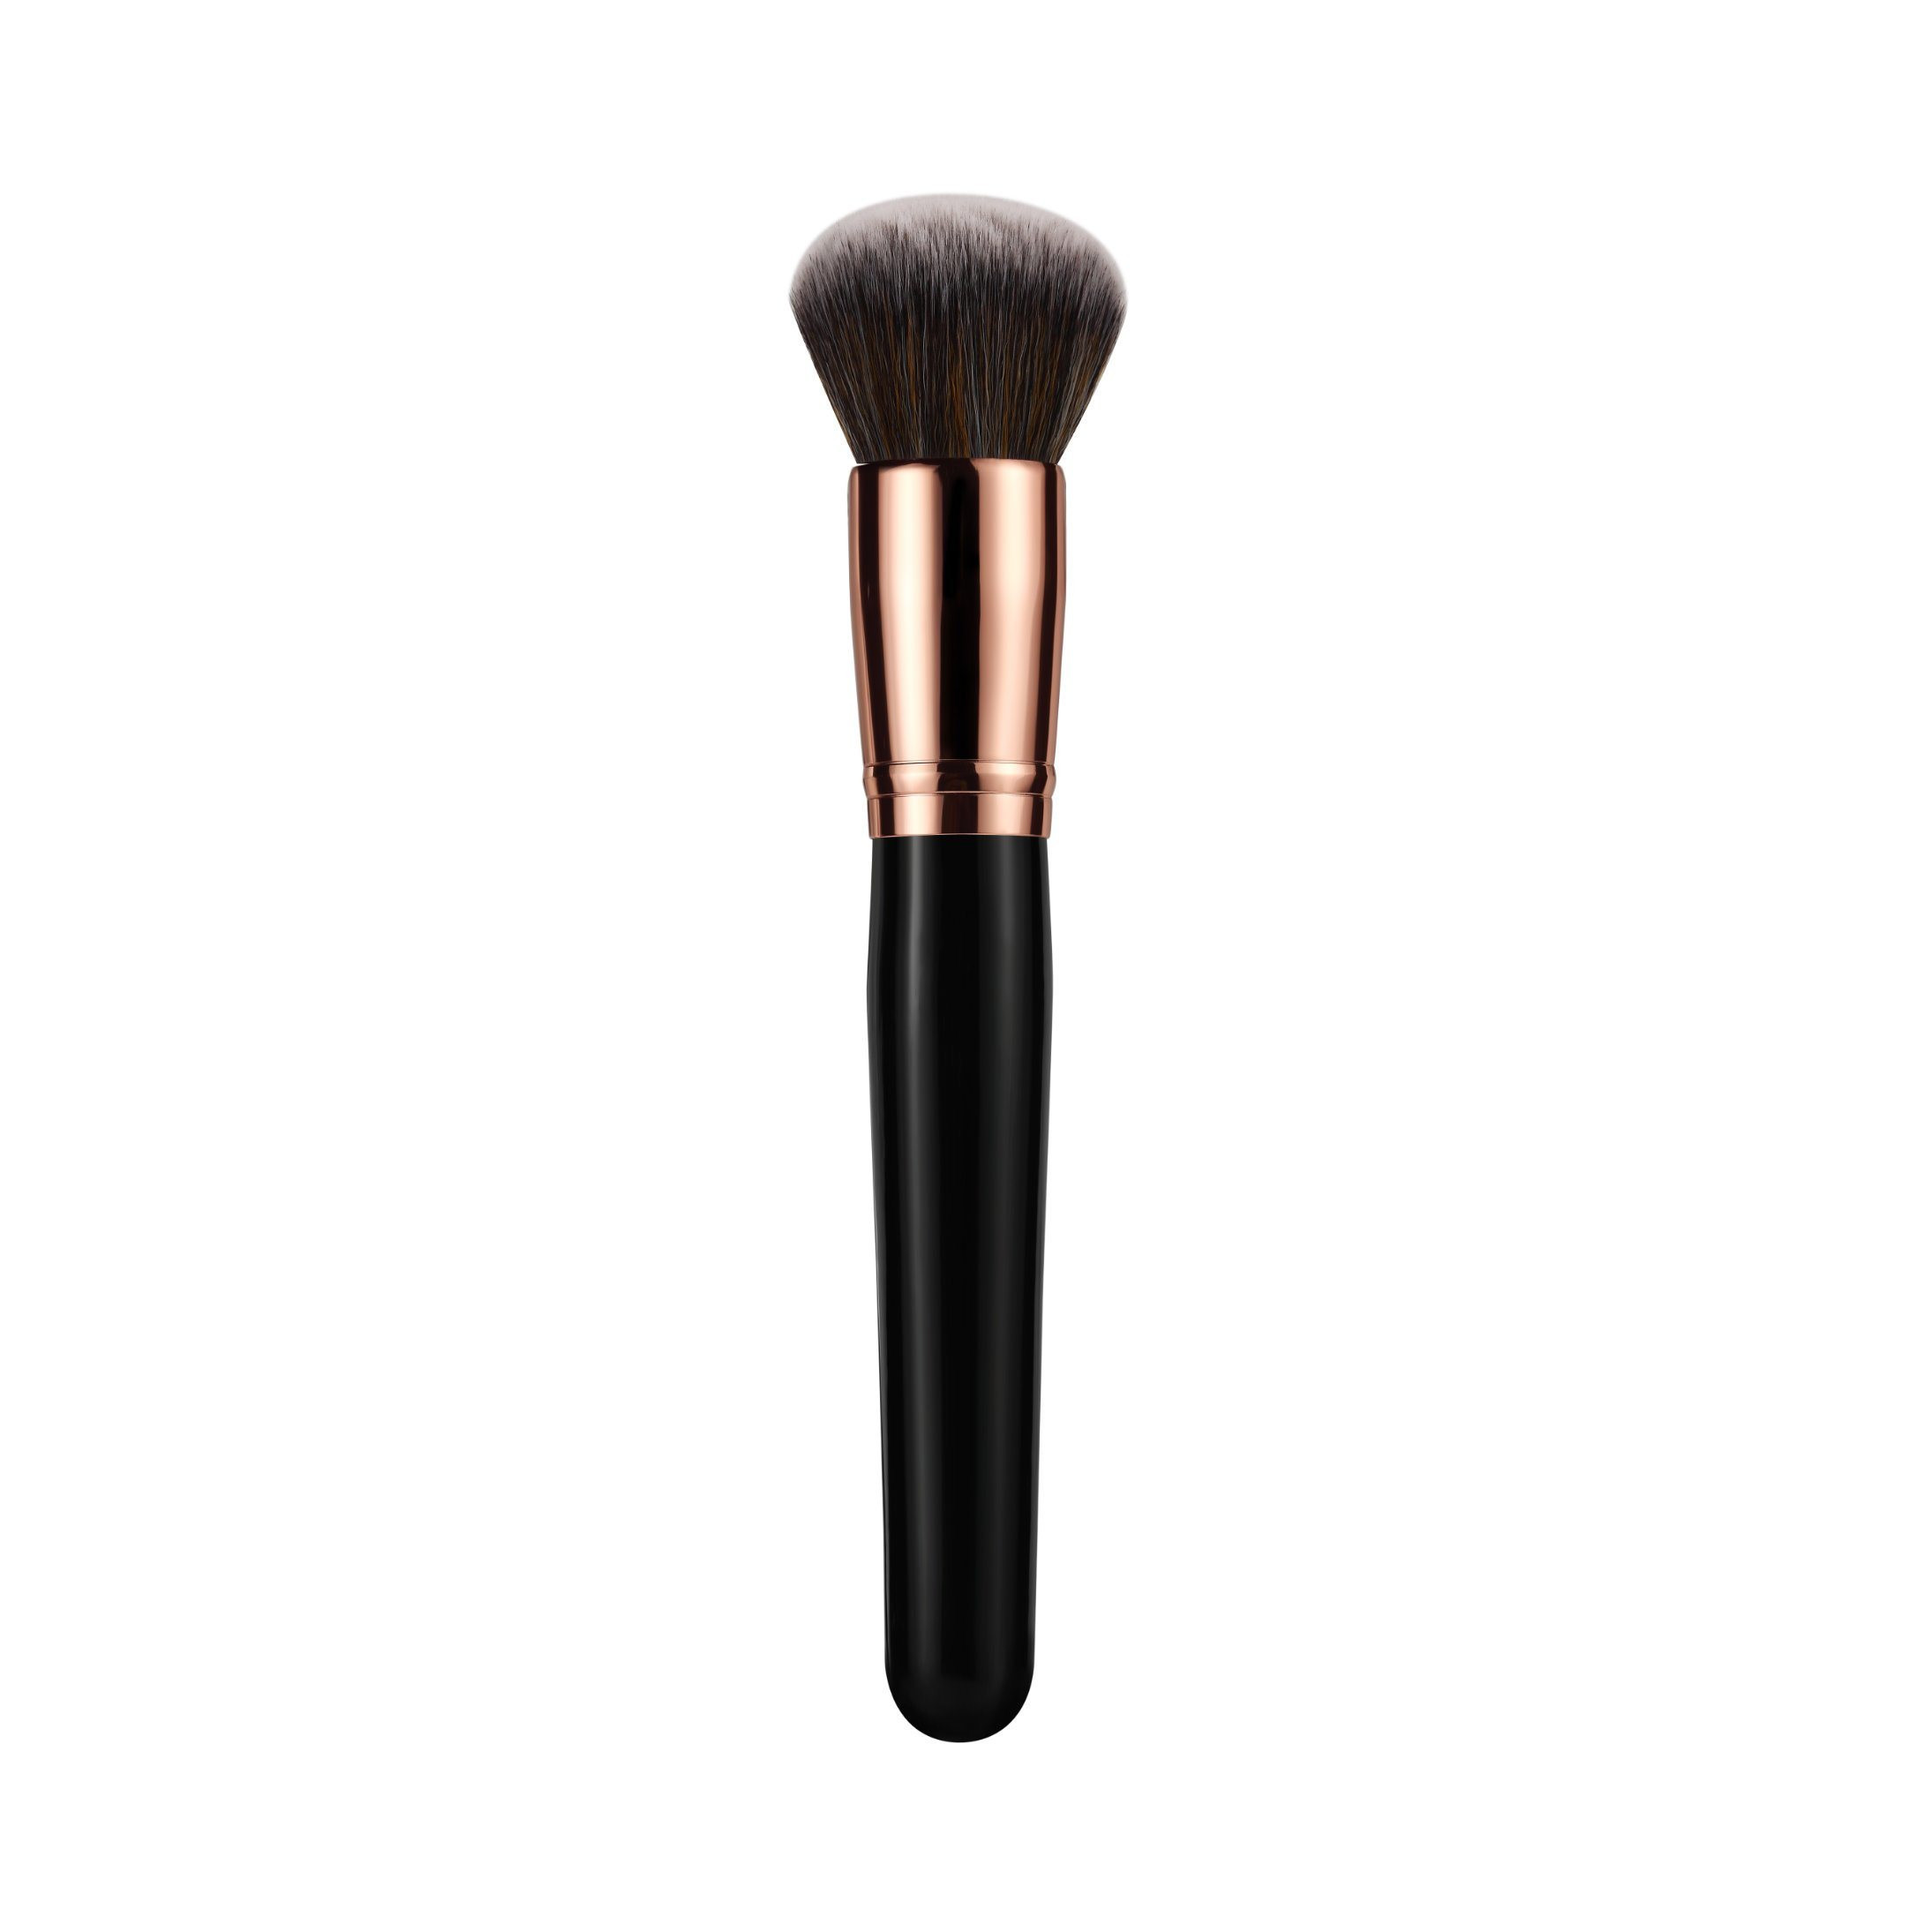 Synthetic Hair Makeup Brush Vegan Multifunction Makeup Brush with Bag